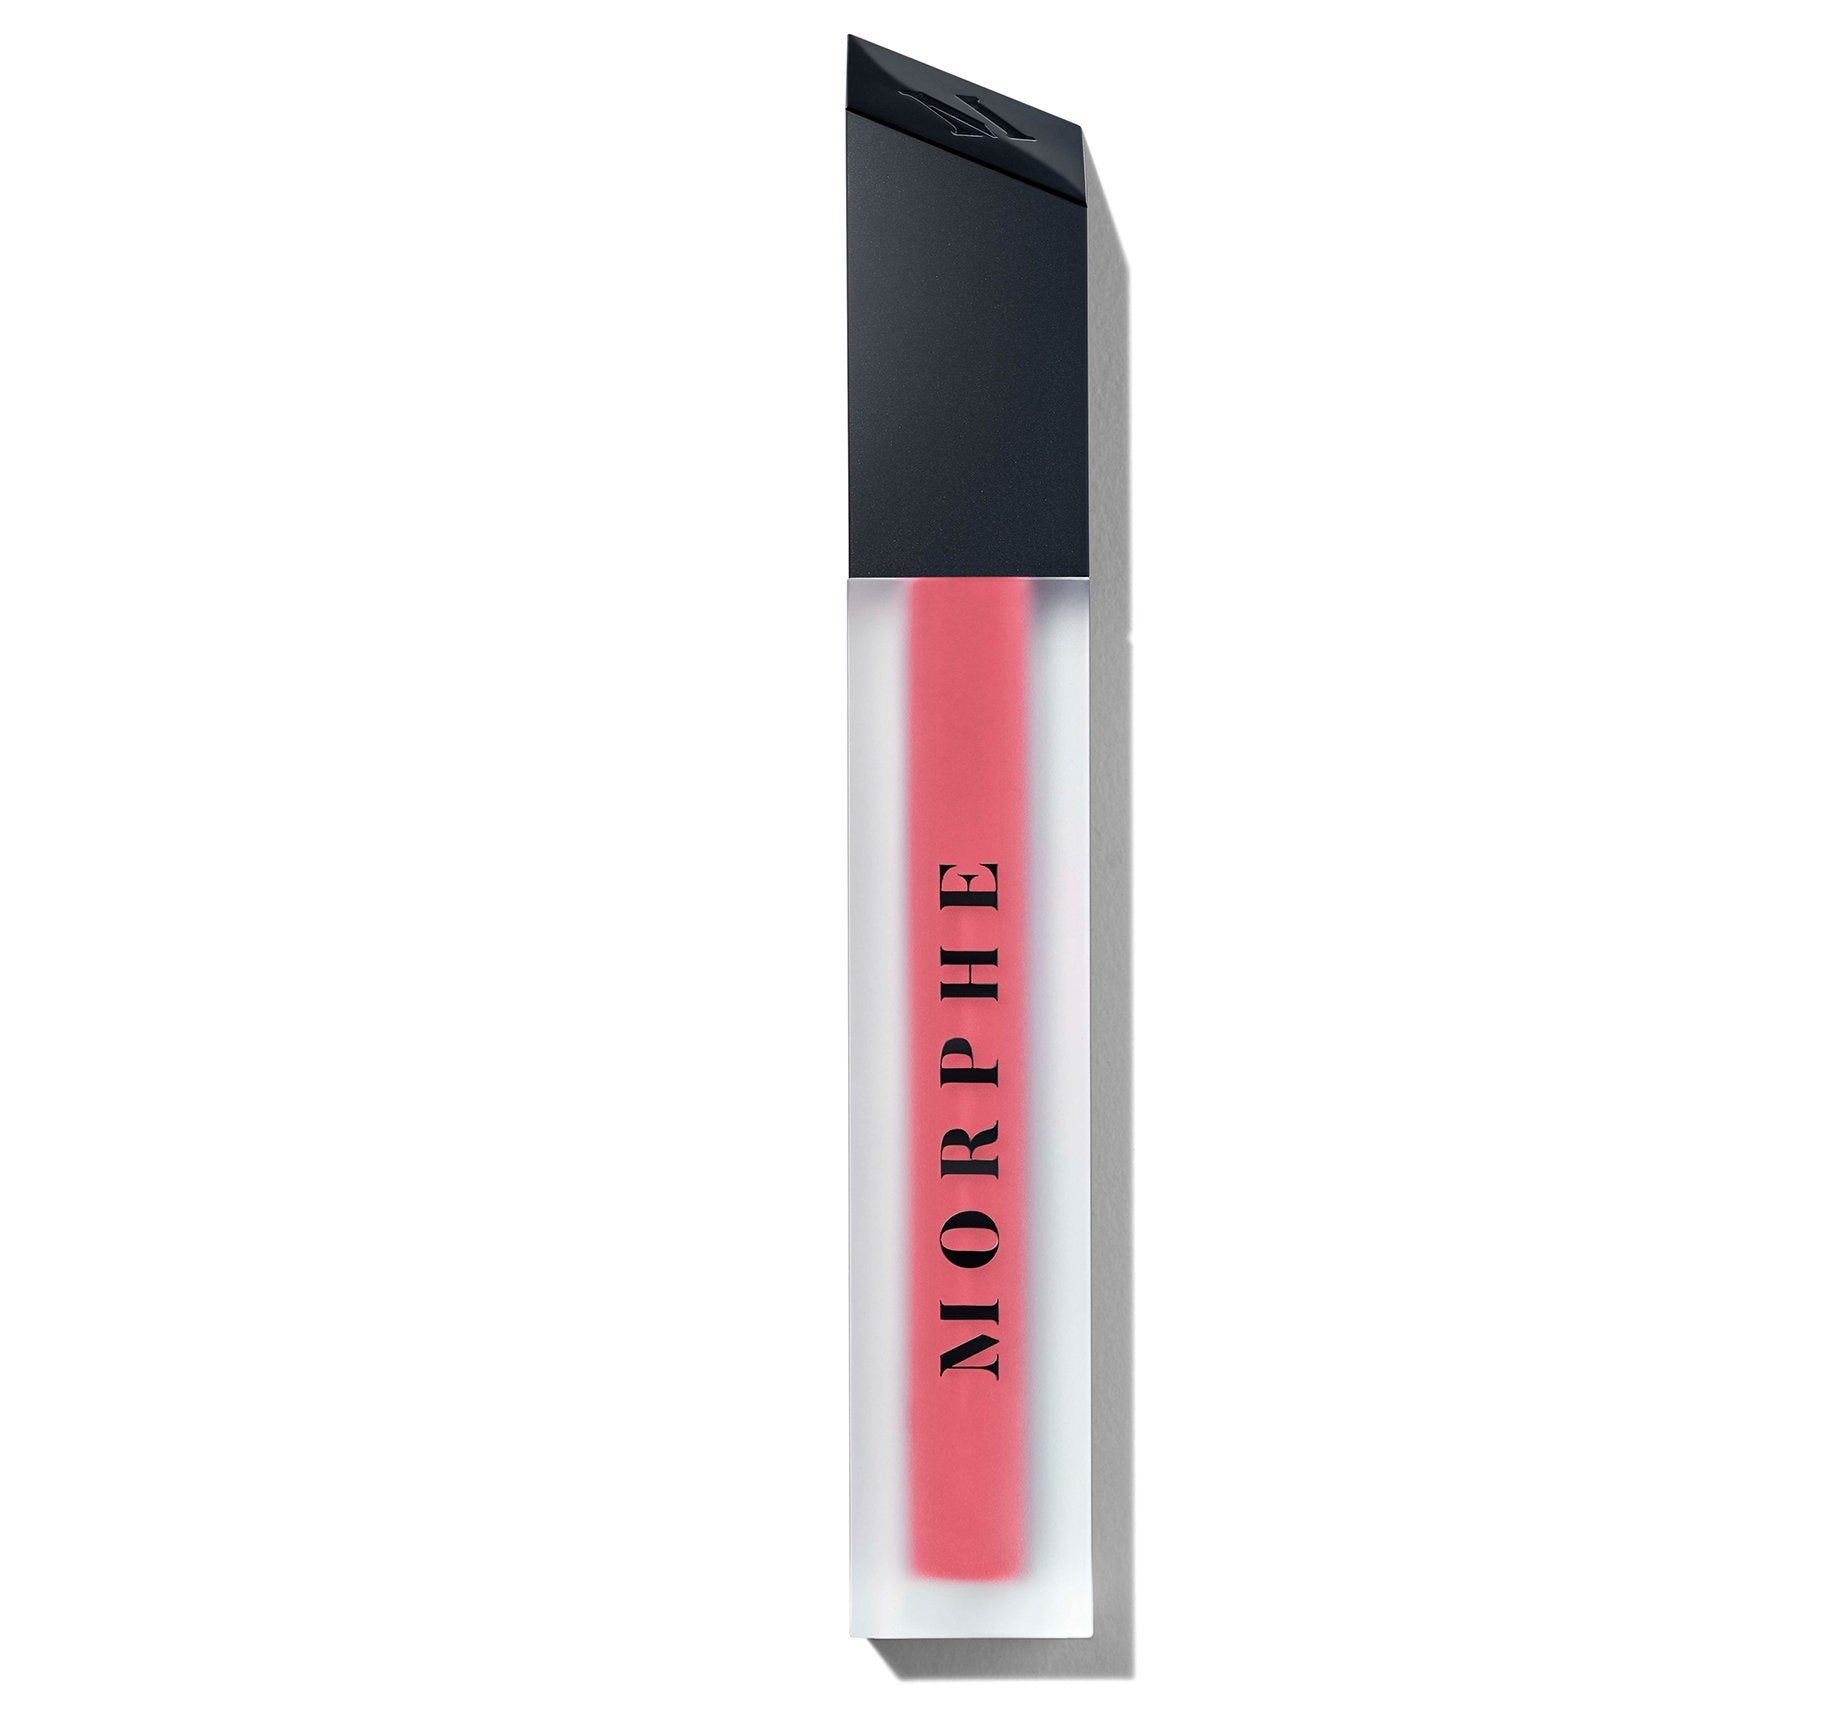 MATTE LIQUID LIPSTICK - SUSPECT, view larger image